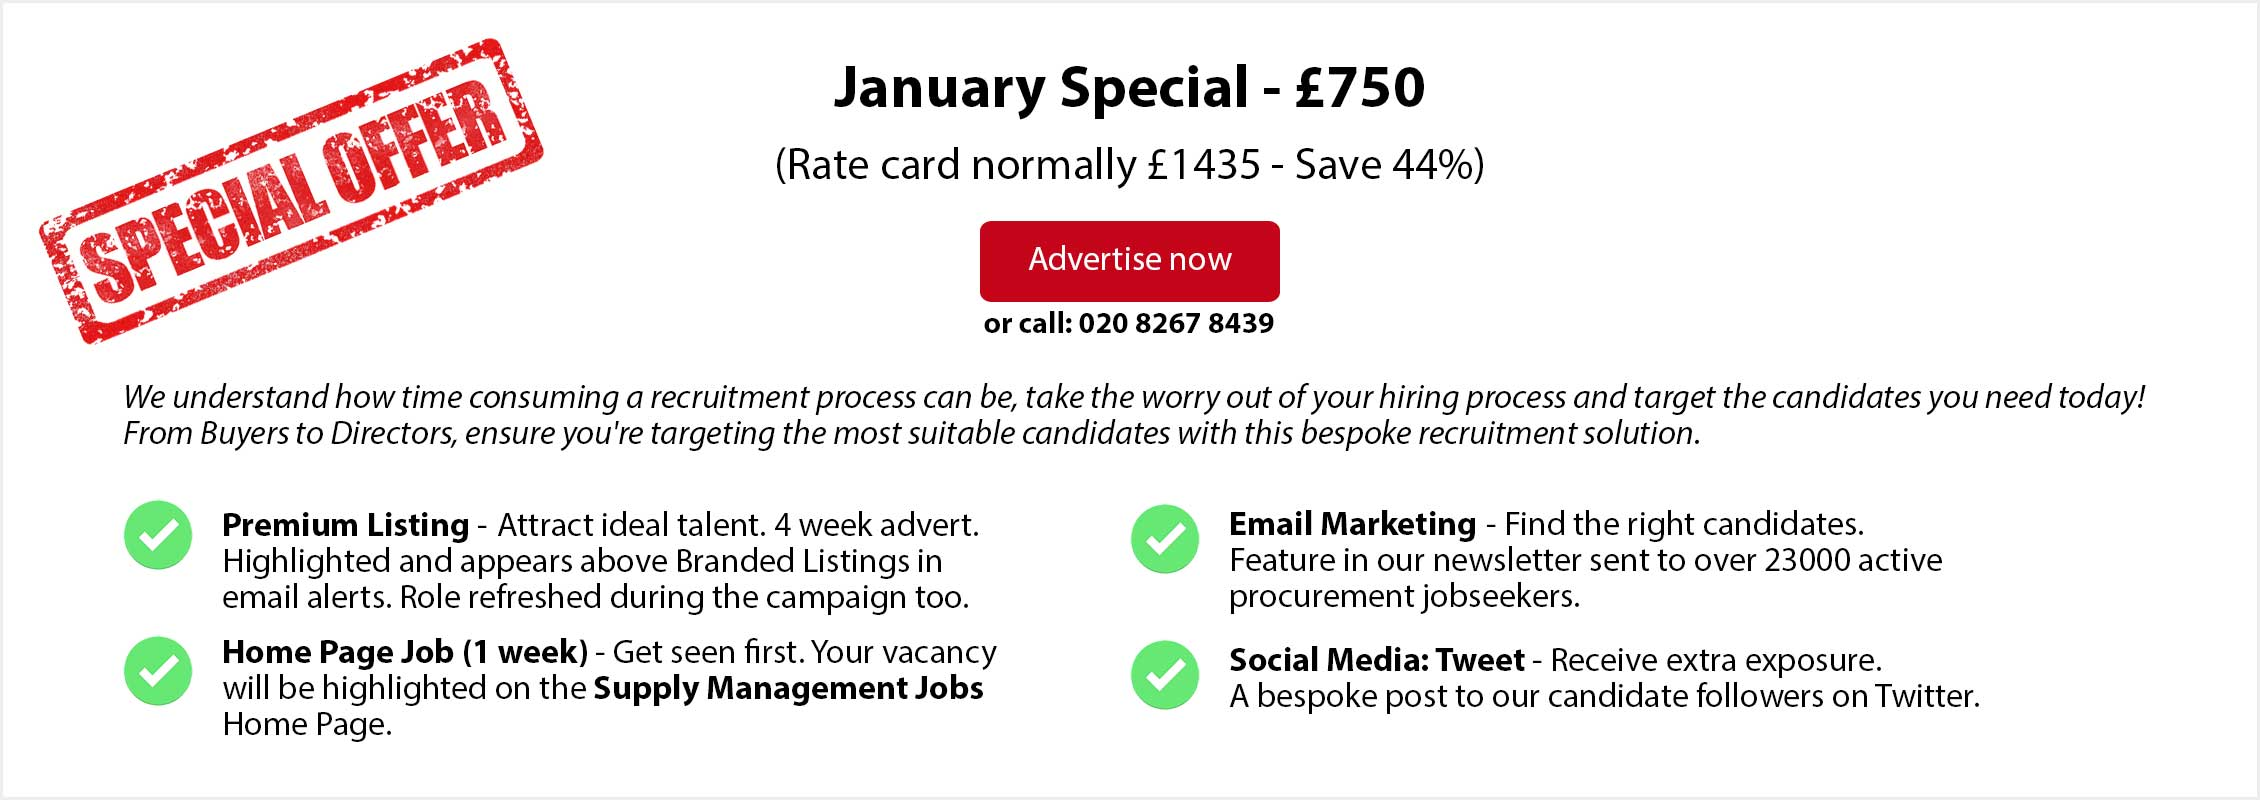 Special Offer. January Special - £750. (Rate card normally £1435 - Save over 44%. ADVERTISE NOW or call: 020 8267 8439. From Buyers to Directors, ensure you're targeting the most suitable candidates with this bespoke recruitment solution. Premium Listing - Attract ideal talent. 4 week advert. Highlighted and appears above Branded Listings in email alerts. Role refreshed during the campaign too. Home Page Job (1 week) - Get seen first. Your vacancy will be highlighted on the Supply Management Jobs Home Page. Email Marketing - Find the right candidates. Feature in our newsletter sent to over 23000 active procurement jobseekers. Social Media: Tweet - Receive extra exposure. A bespoke post to our candidate followers on Twitter.